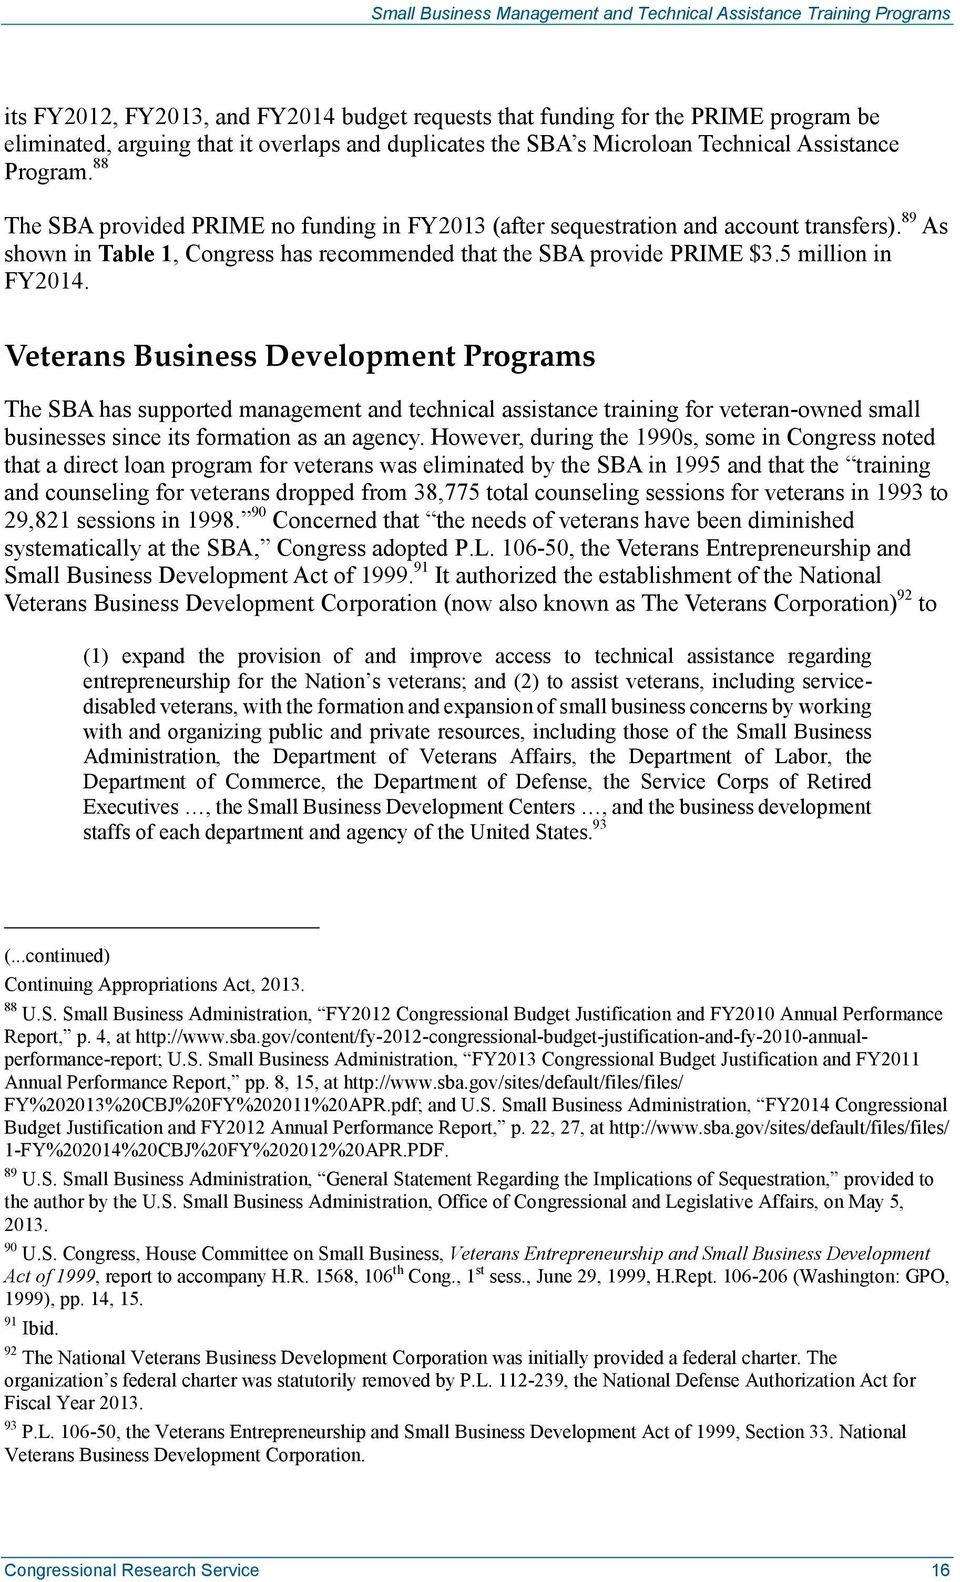 Veterans Business Development Programs The SBA has supported management and technical assistance training for veteran-owned small businesses since its formation as an agency.